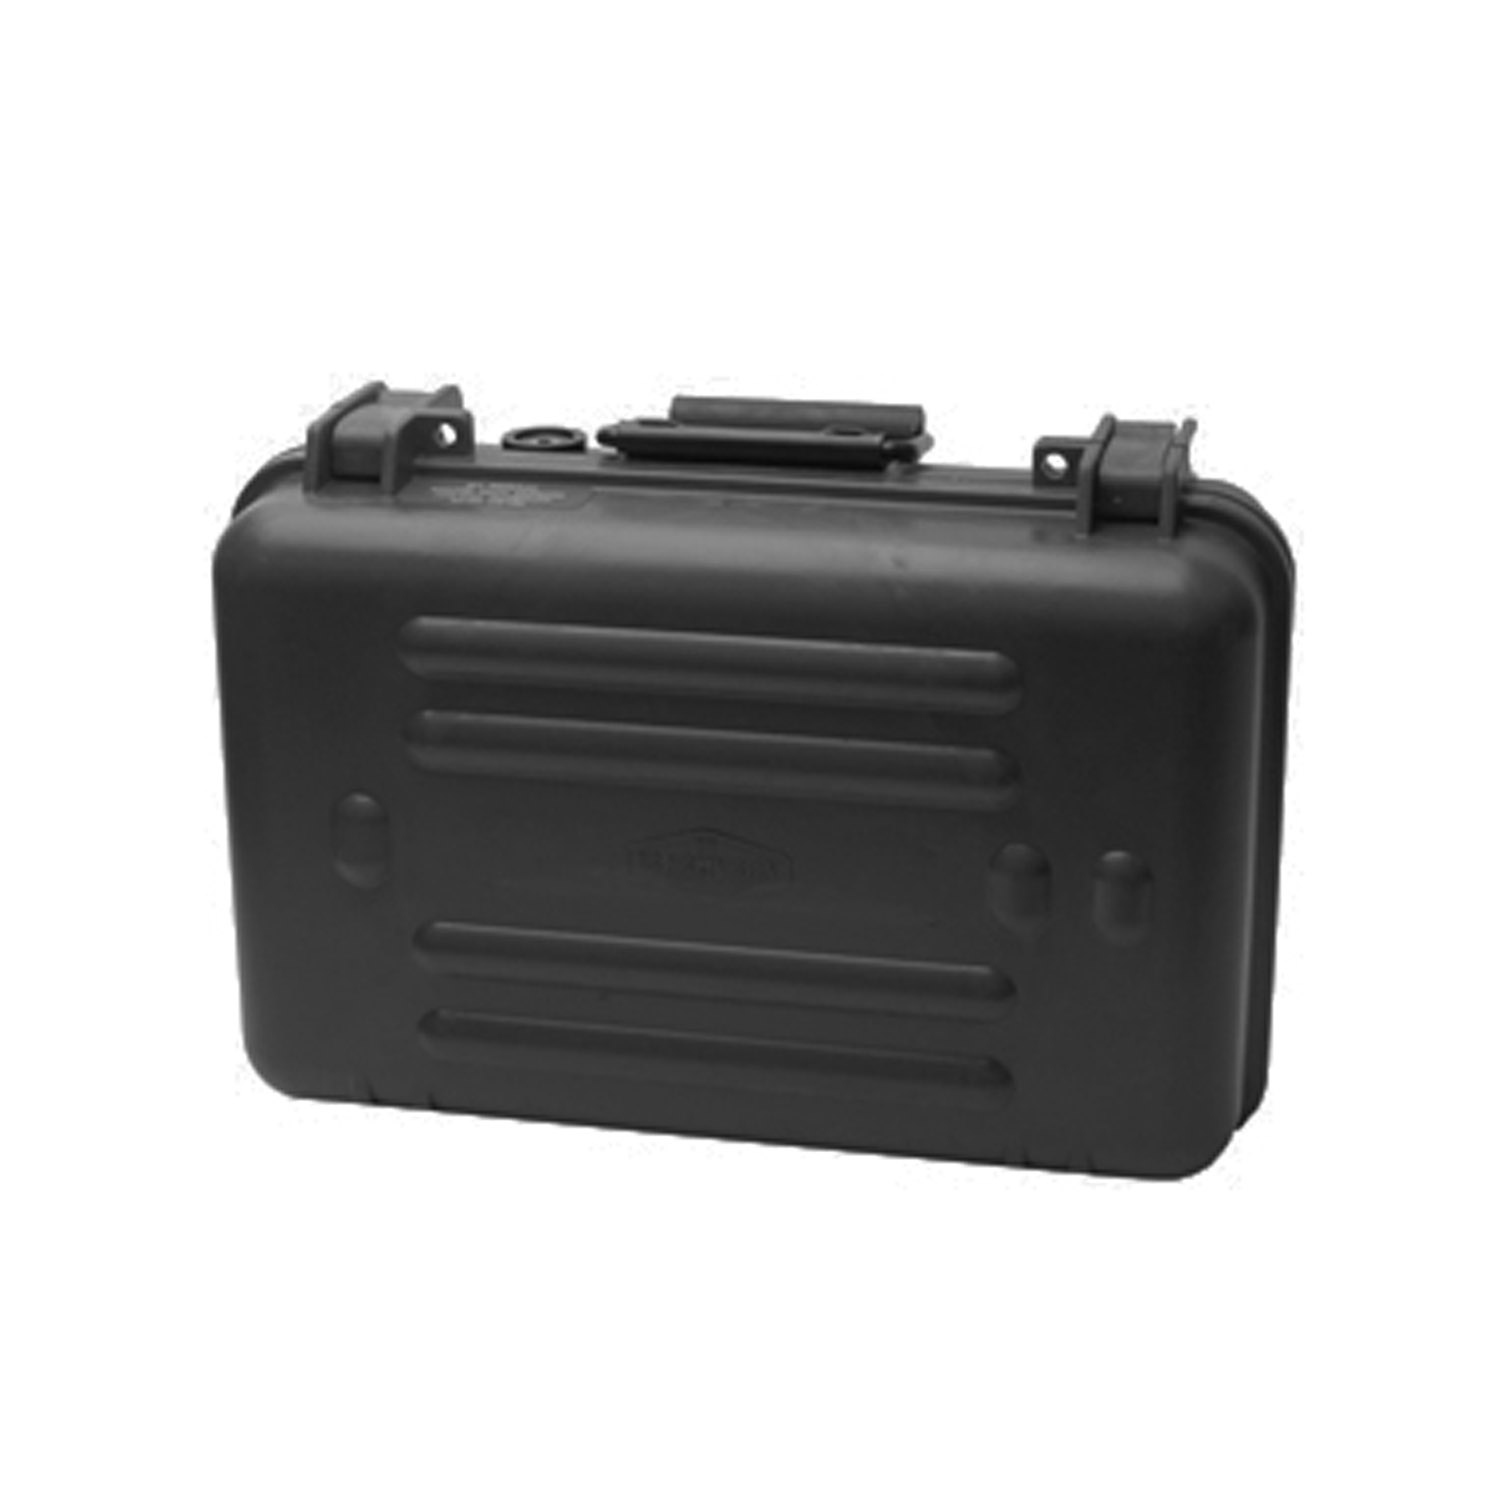 U.S. Night Vision Mil Spec Hard Case